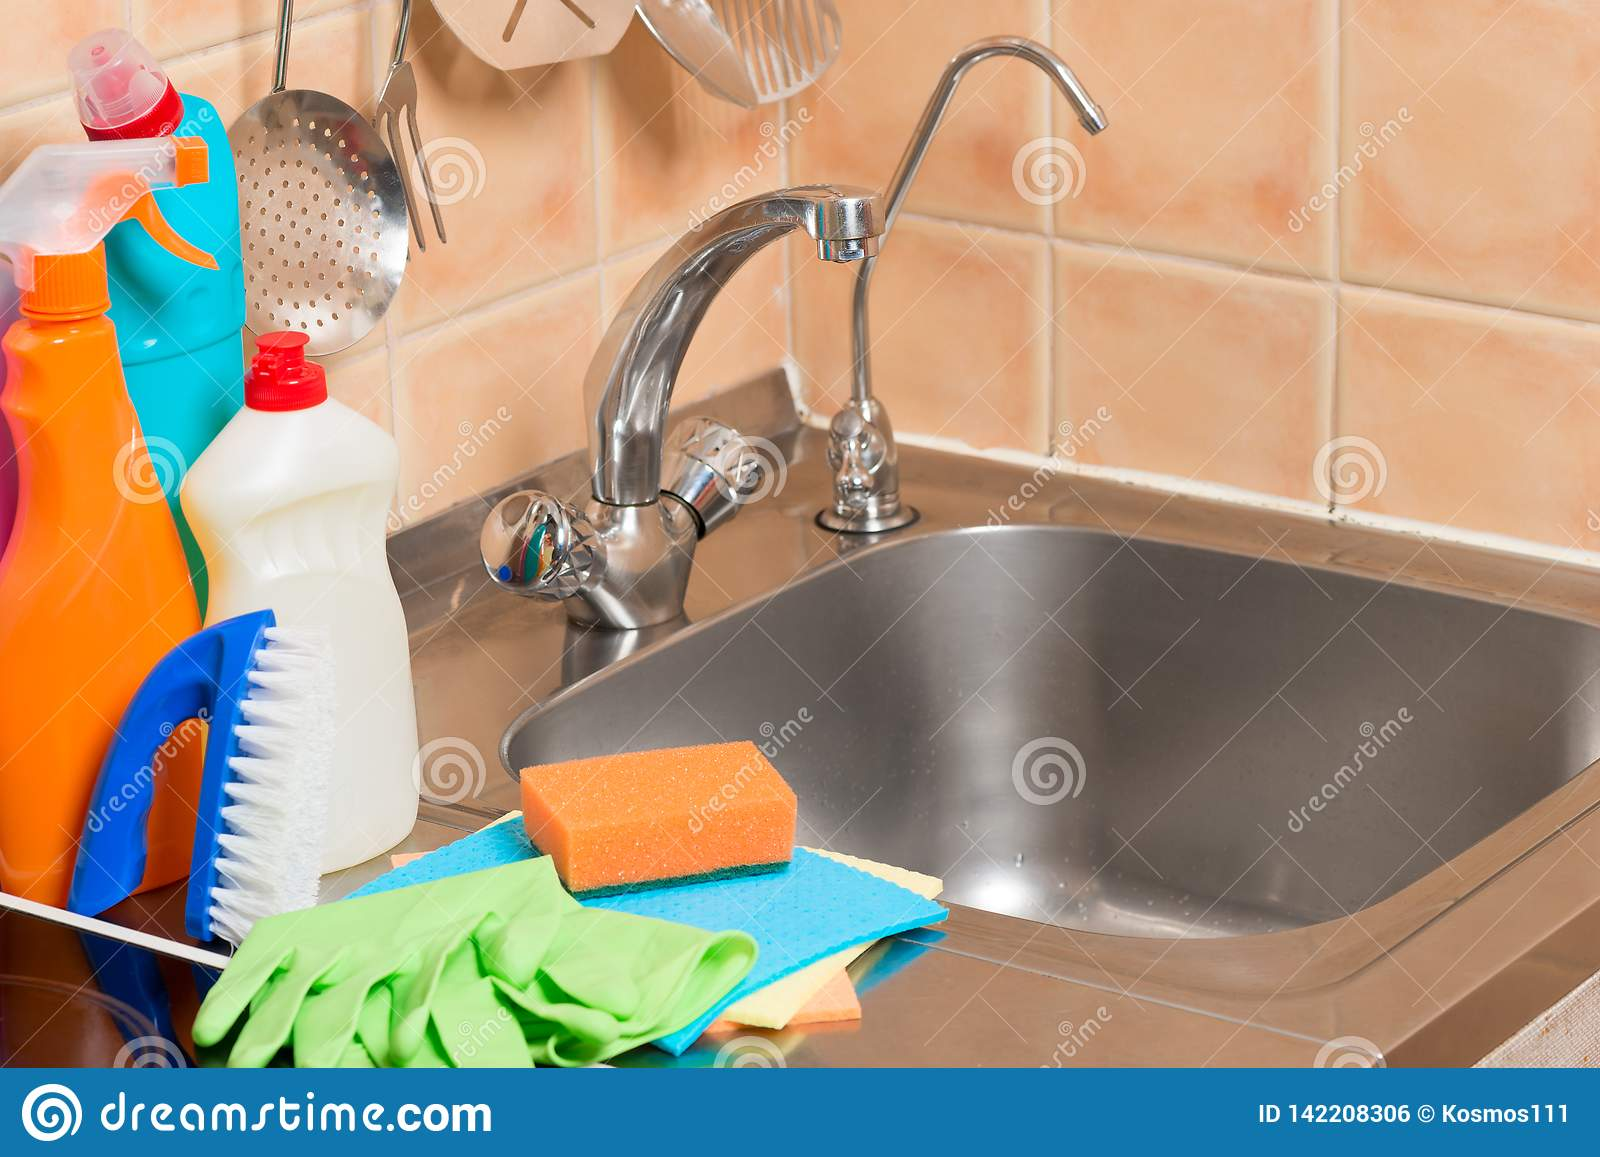 https www dreamstime com close up objects kitchen faucet sink cleaning products image142208306